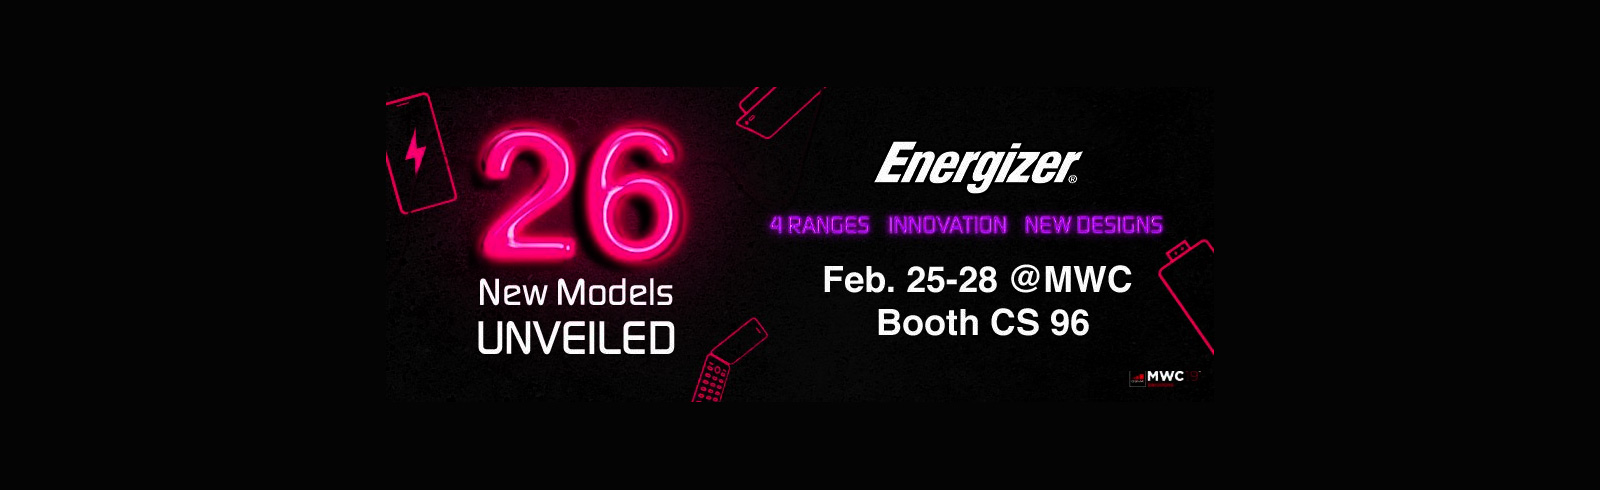 Energizer to present a foldable smartphone and a model with an 18000 mAh batter at the 2019 MWC